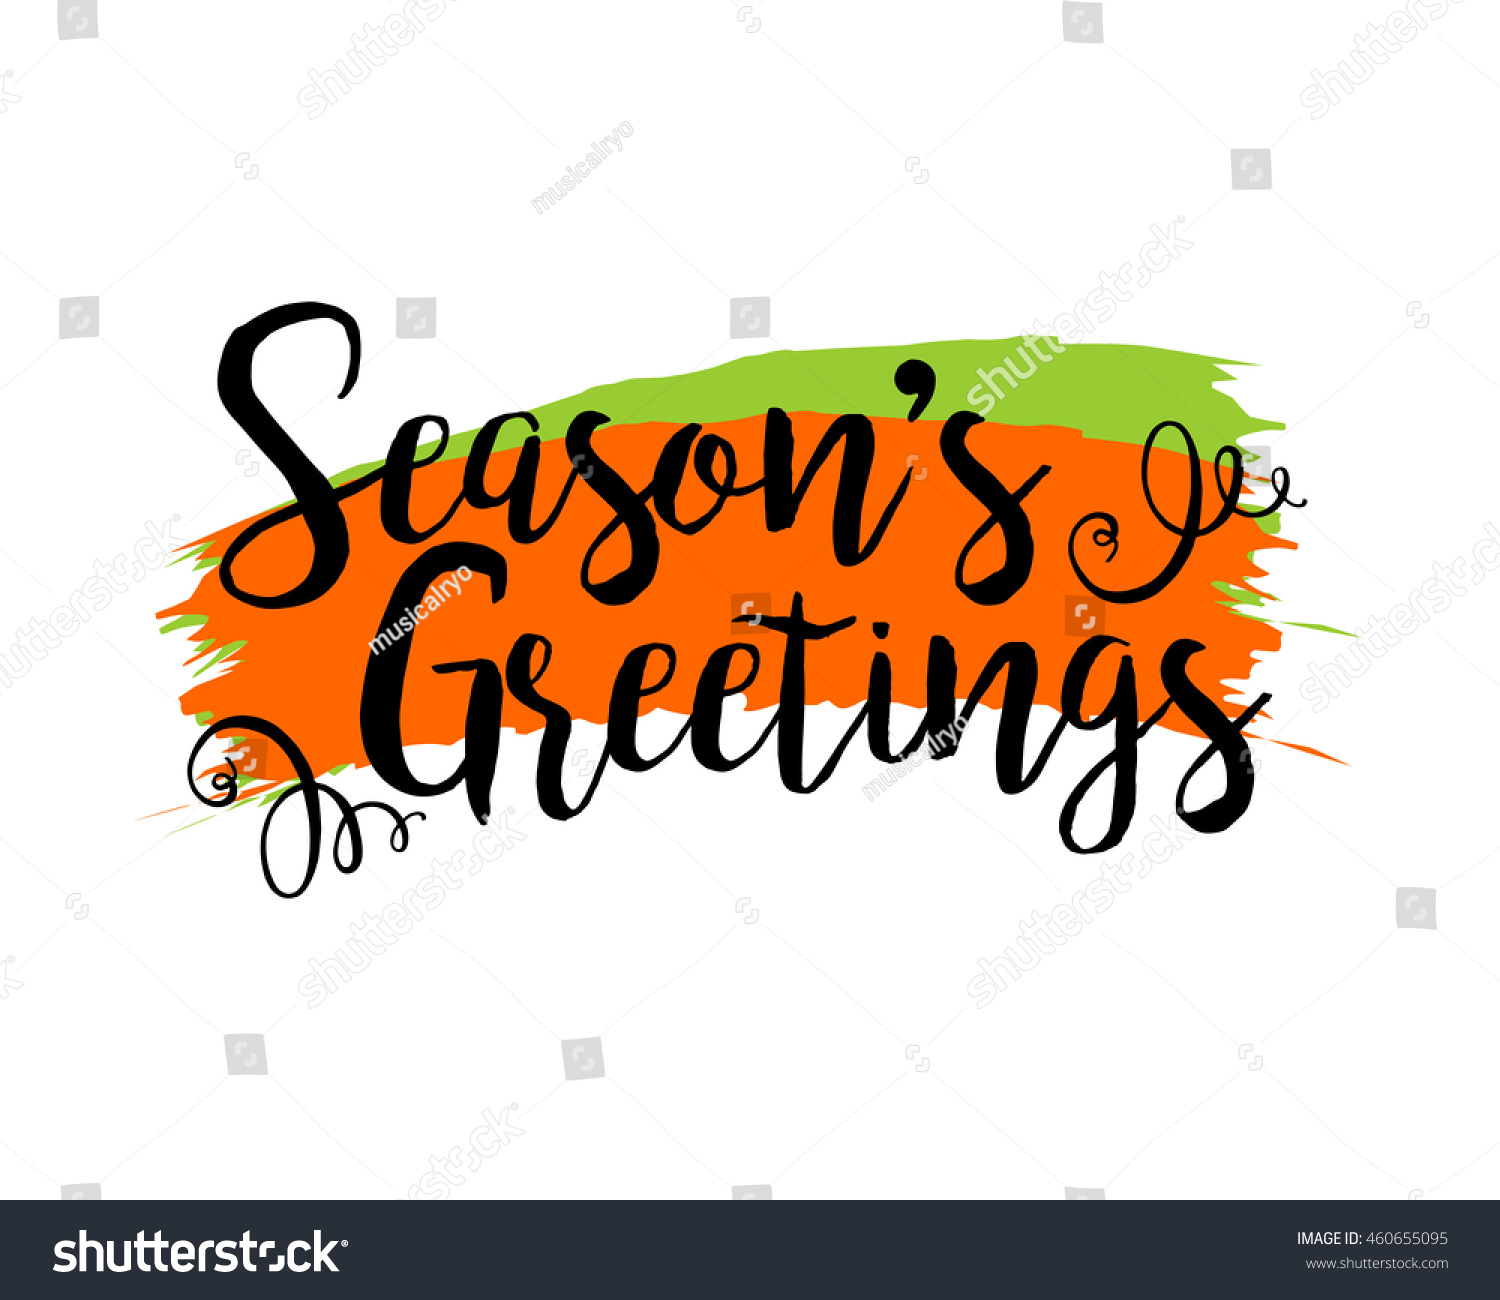 Seasons greetings typography typographic creative writing stock seasons greetings typography typographic creative writing text image 2 kristyandbryce Choice Image